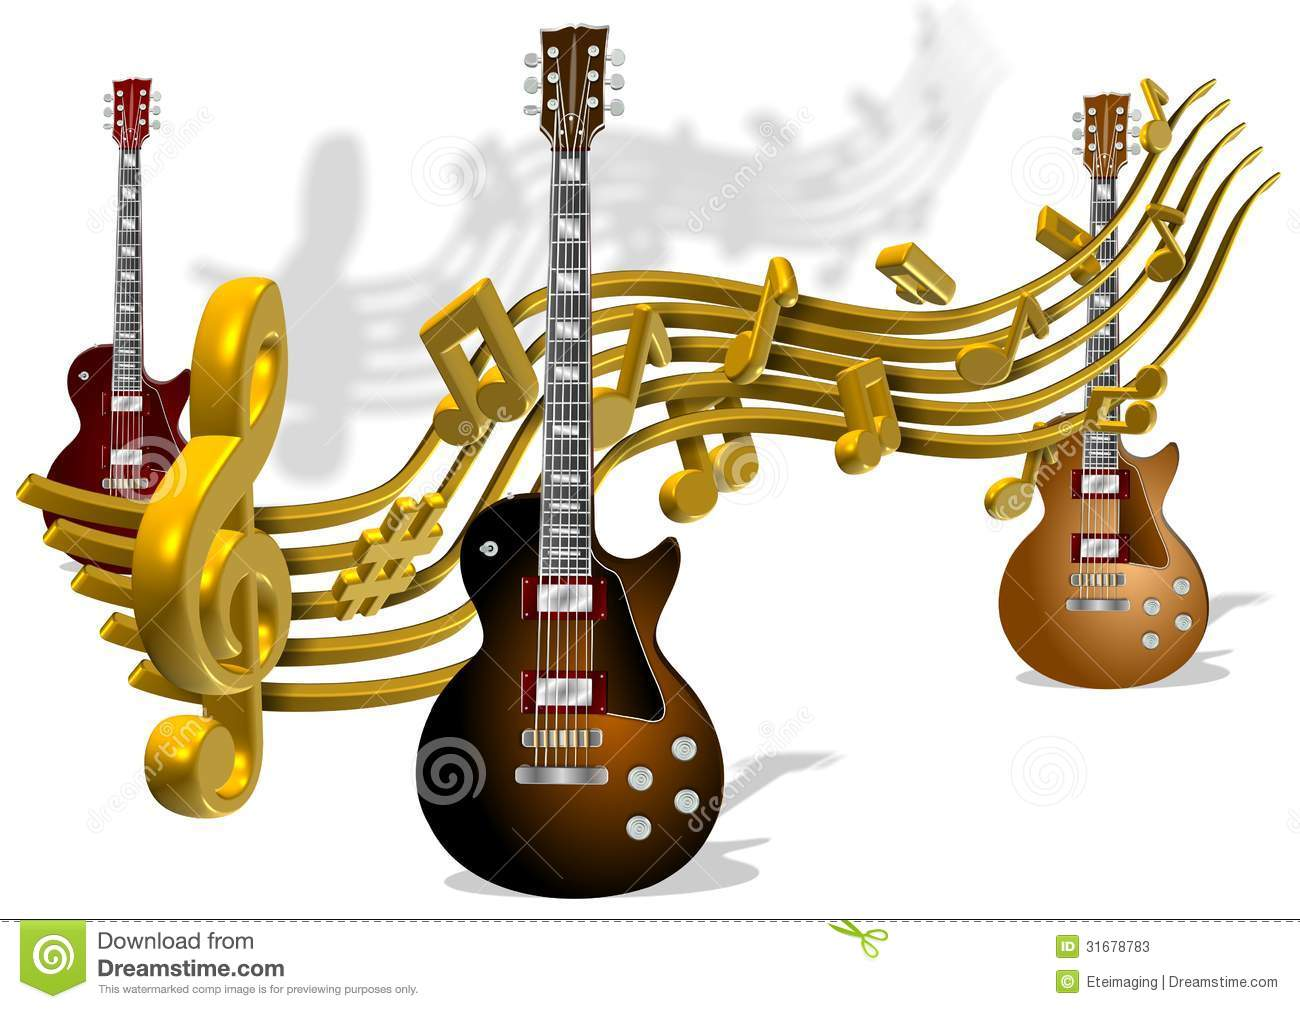 notes music guitars electric golden around note going preview dreamstime